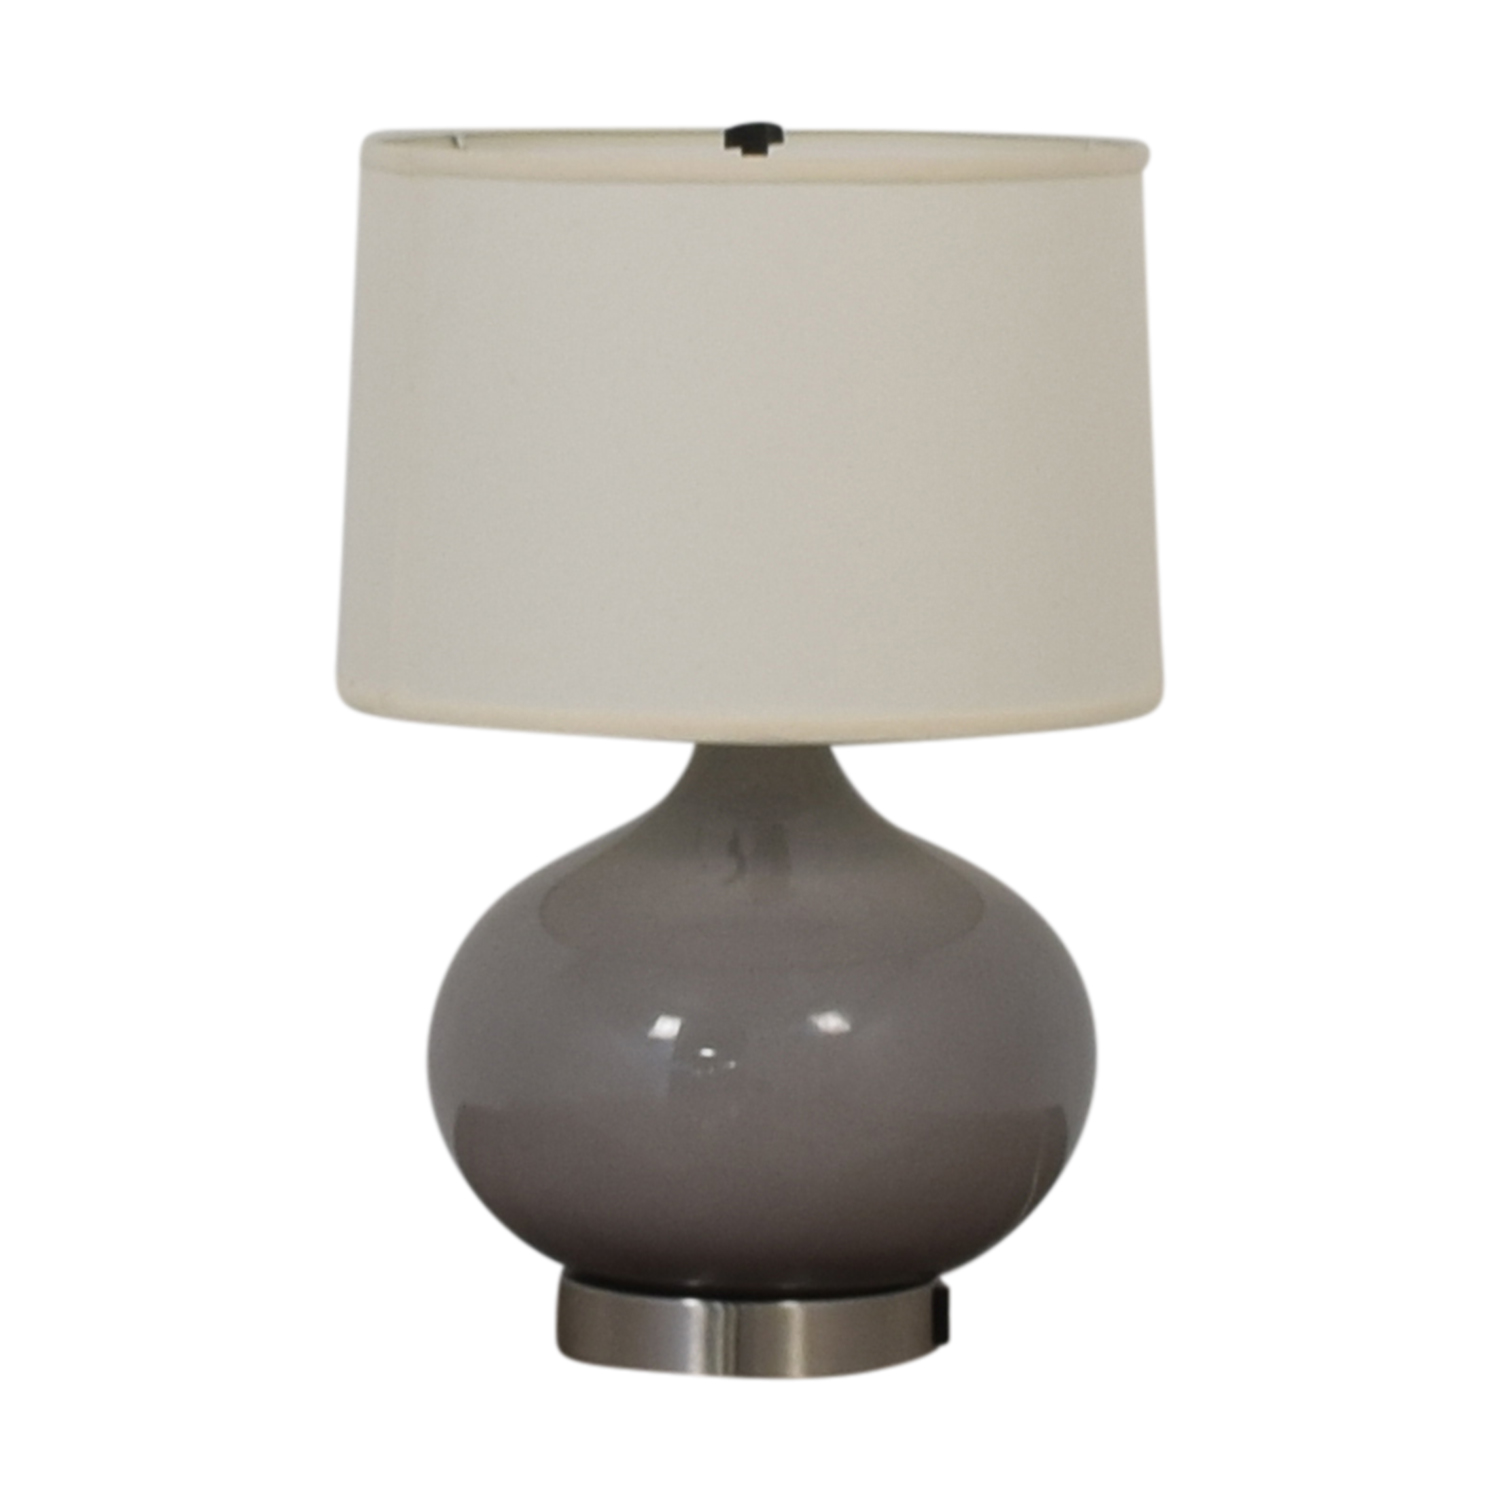 Crate & Barrel Crate & Barrel Spectrum Large Table Lamp discount